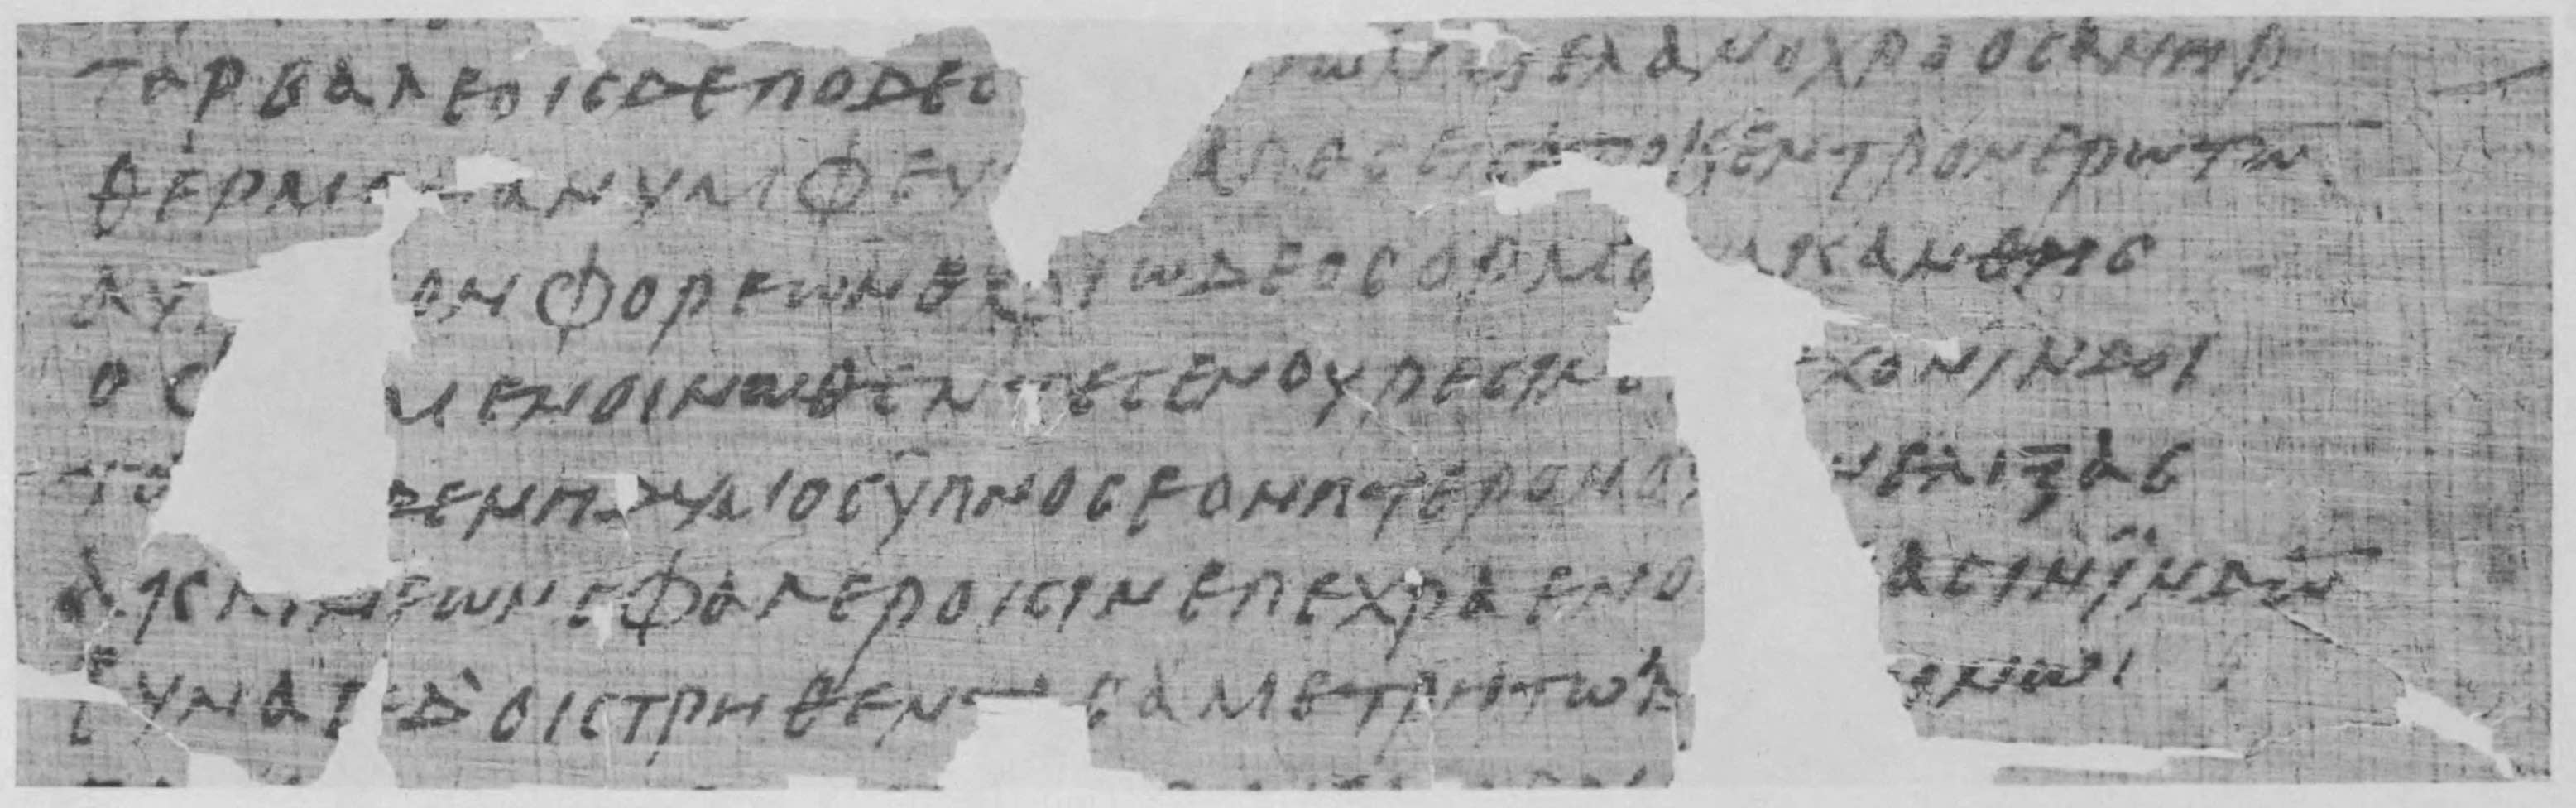 Detail of papyrus codex showing Dionysiaca 15. 84–90. Credit: Wikimedia Commons